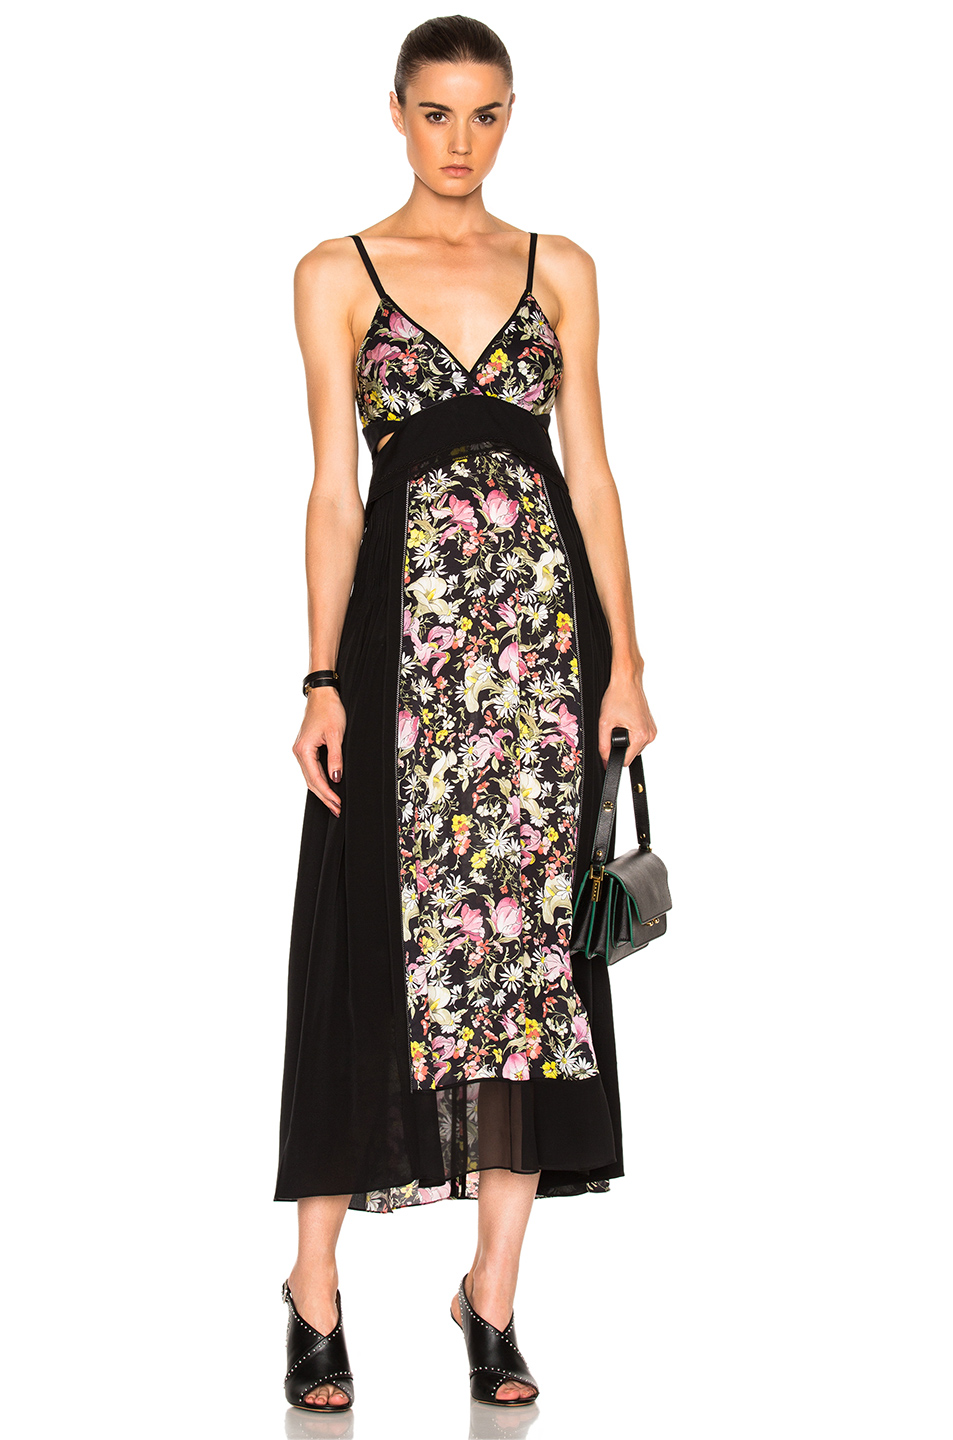 3.1 phillip lim Meadow Flower Maxi Dress in Black,Floral,Pink,Yellow